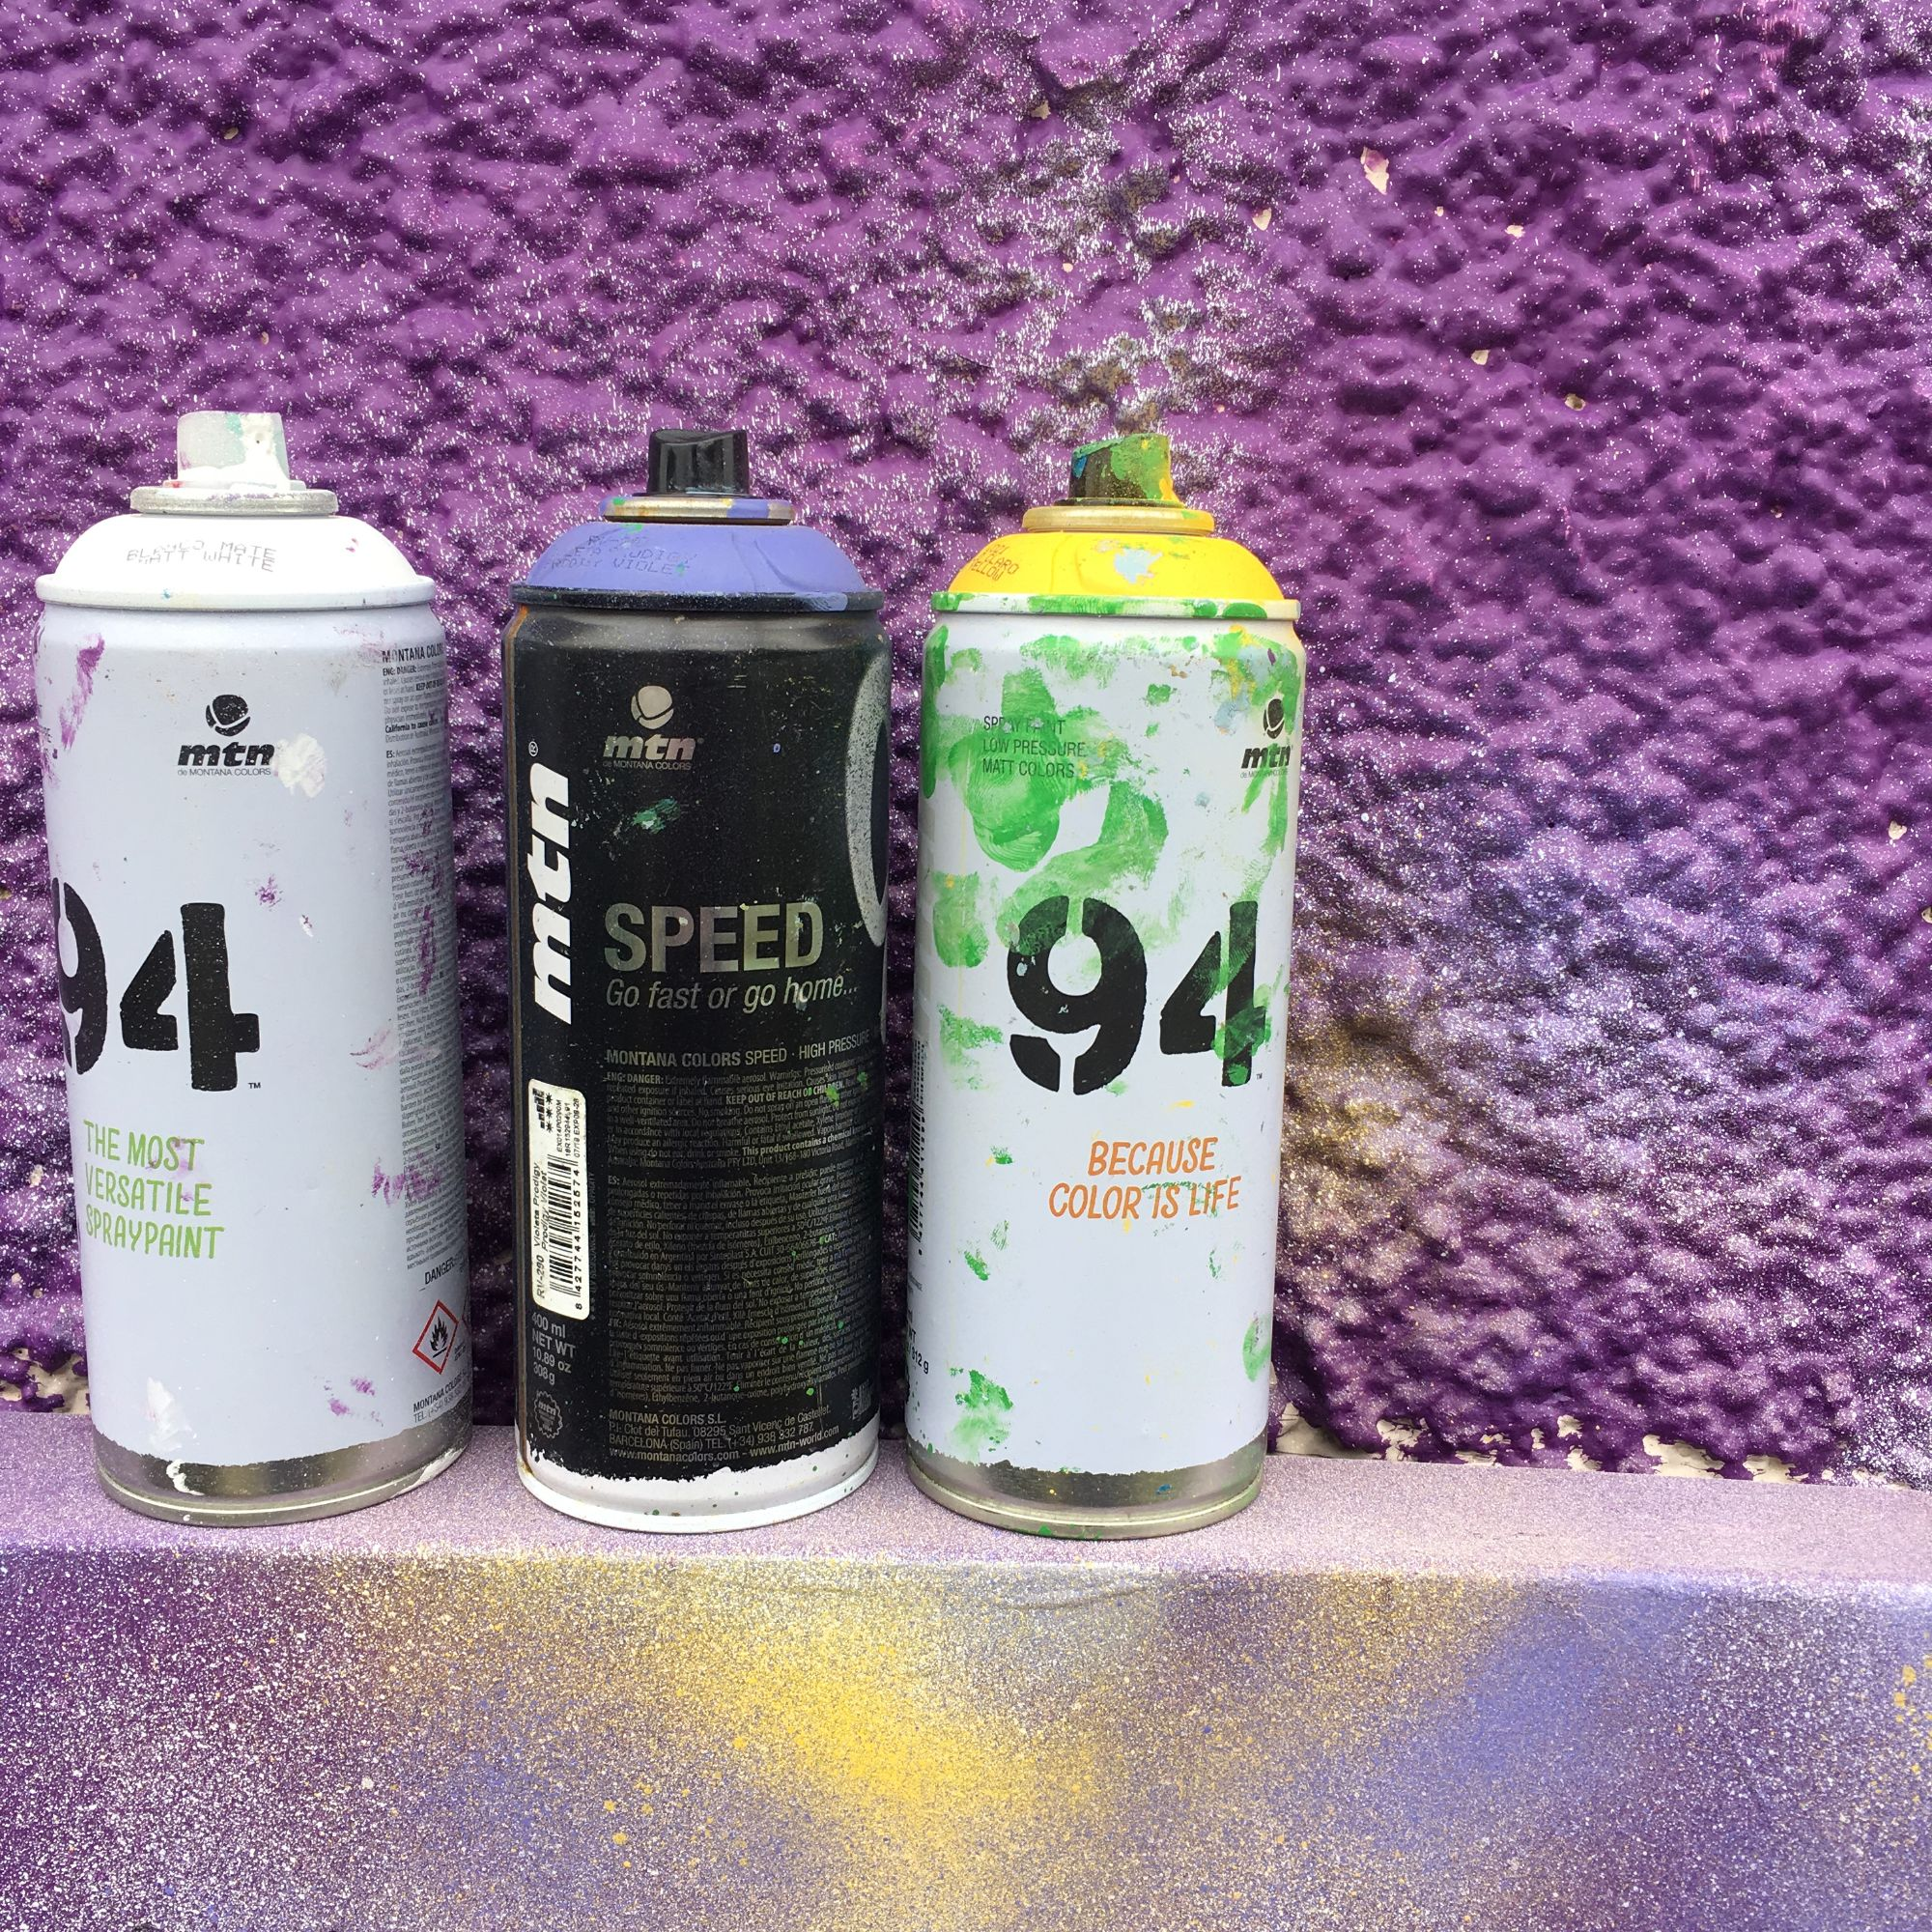 Tins of spray paint against a purple backdrop